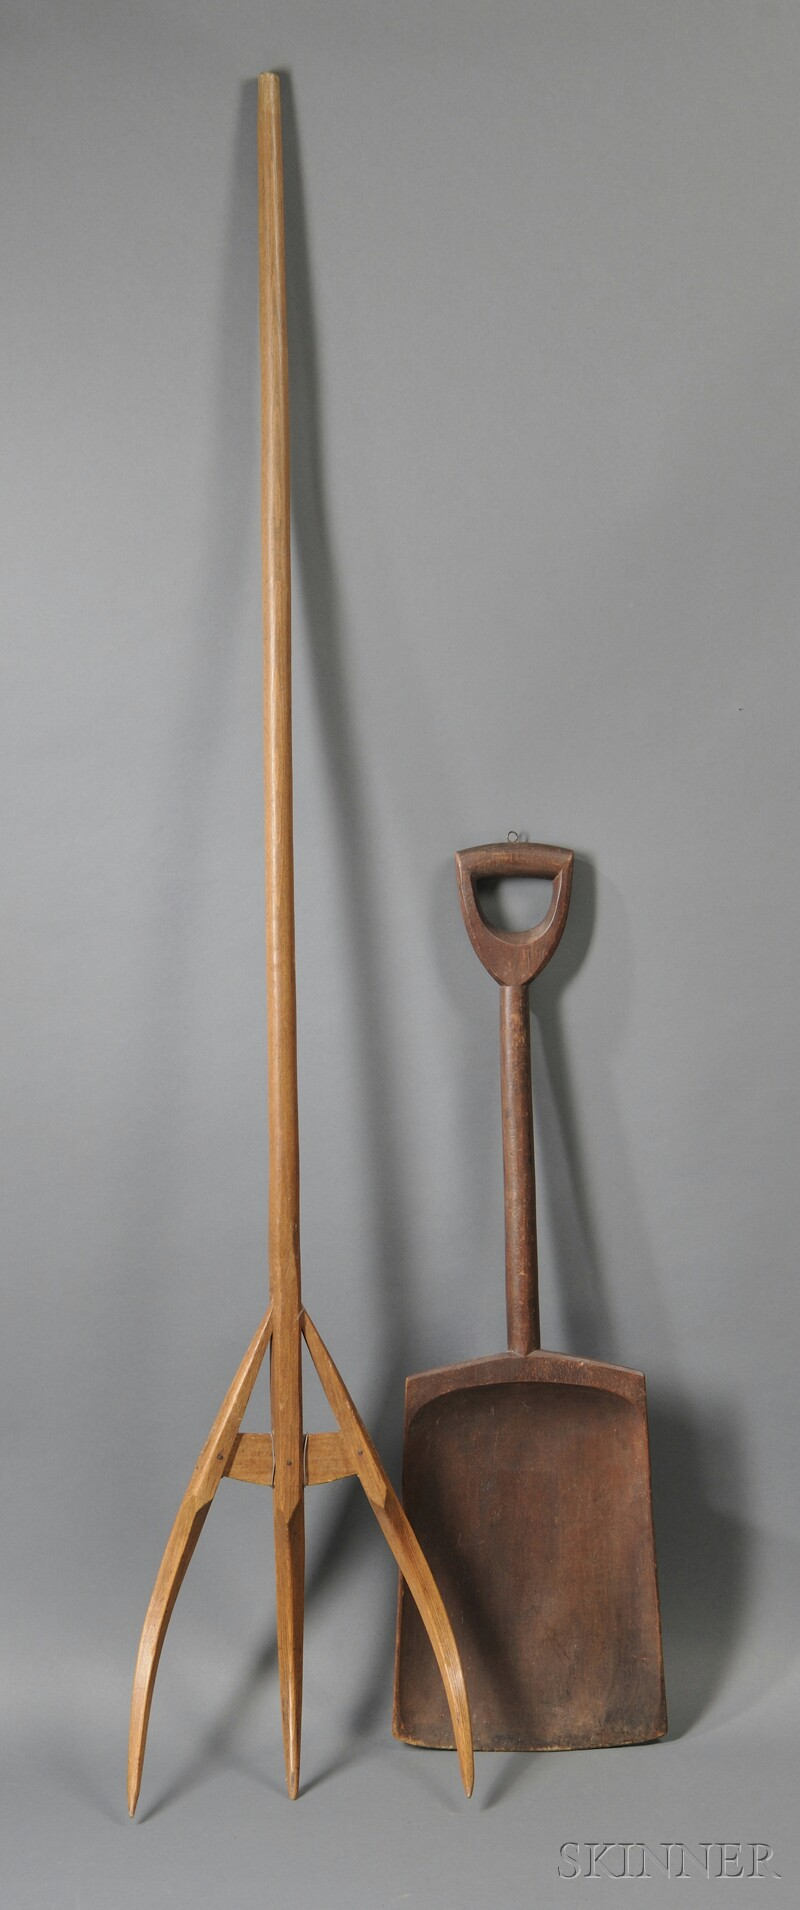 Shaker Wooden Hay Fork and Shovel